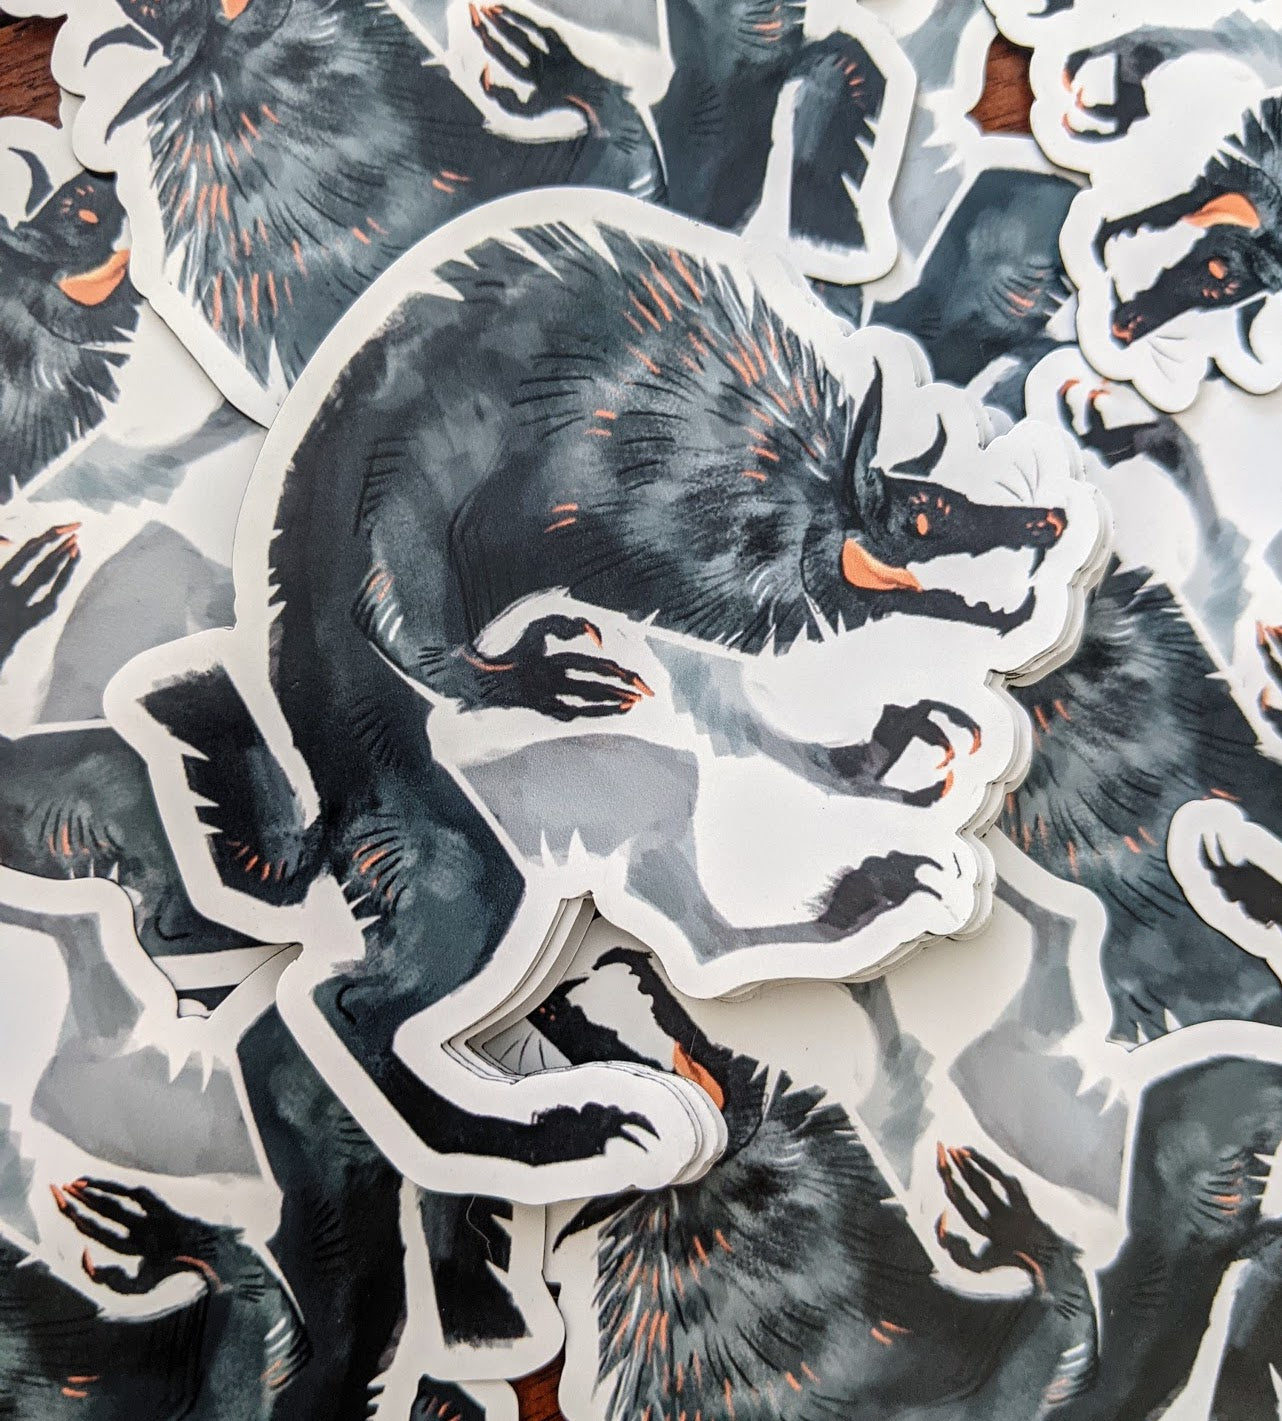 Werewolf Fridge Magnets